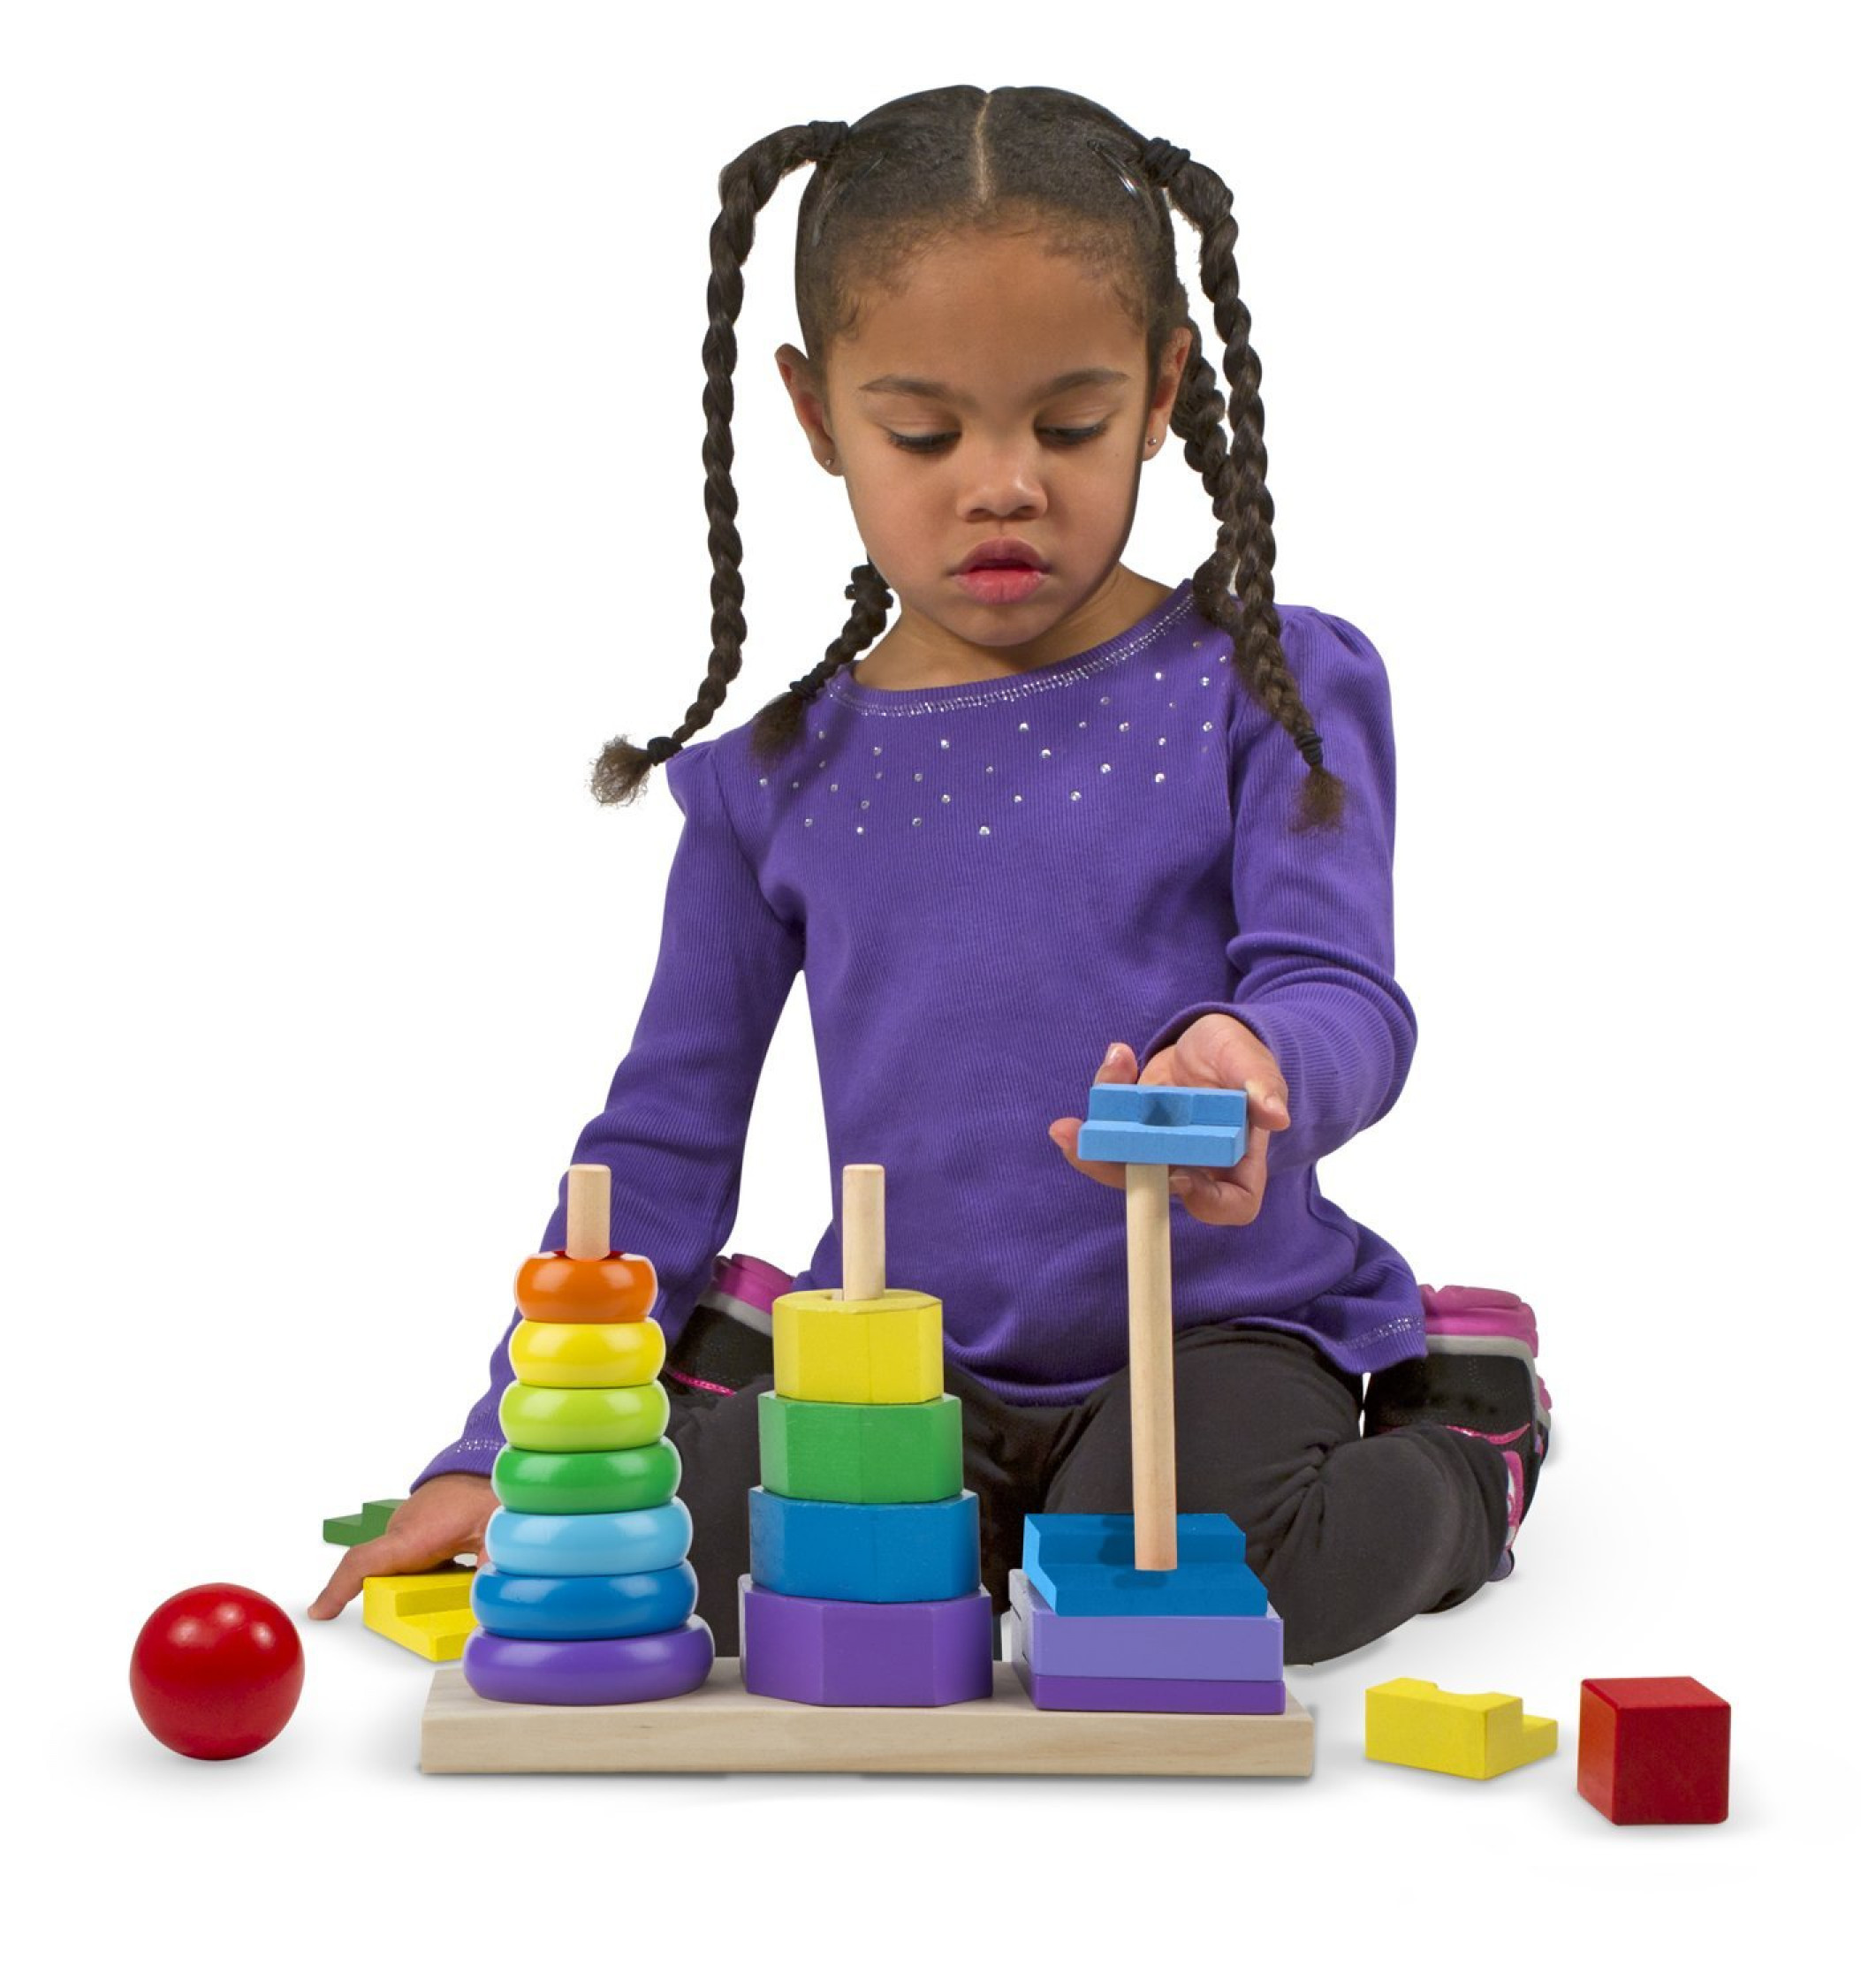 Toys For Special Education : Sensory educational stacker toy set special needs autism